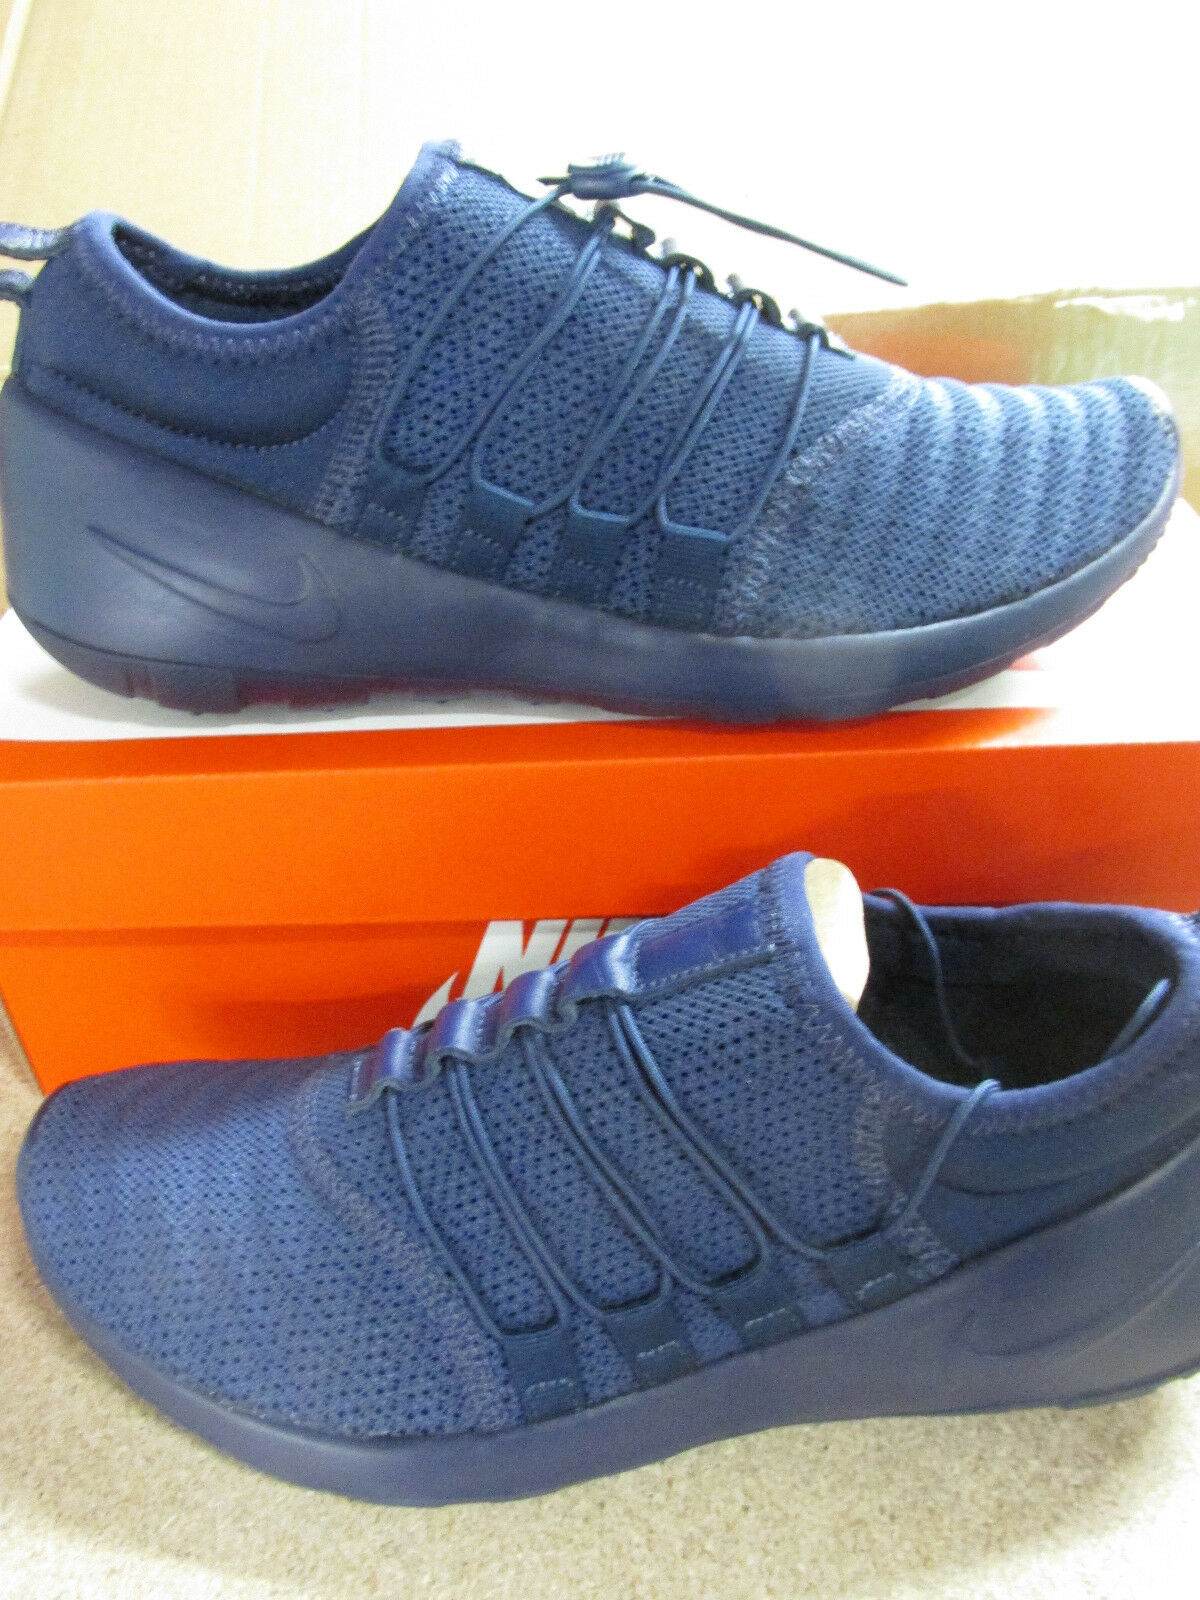 Nike Payaa PREM QS Mens Running Trainers 807738 400 Sneakers Shoes